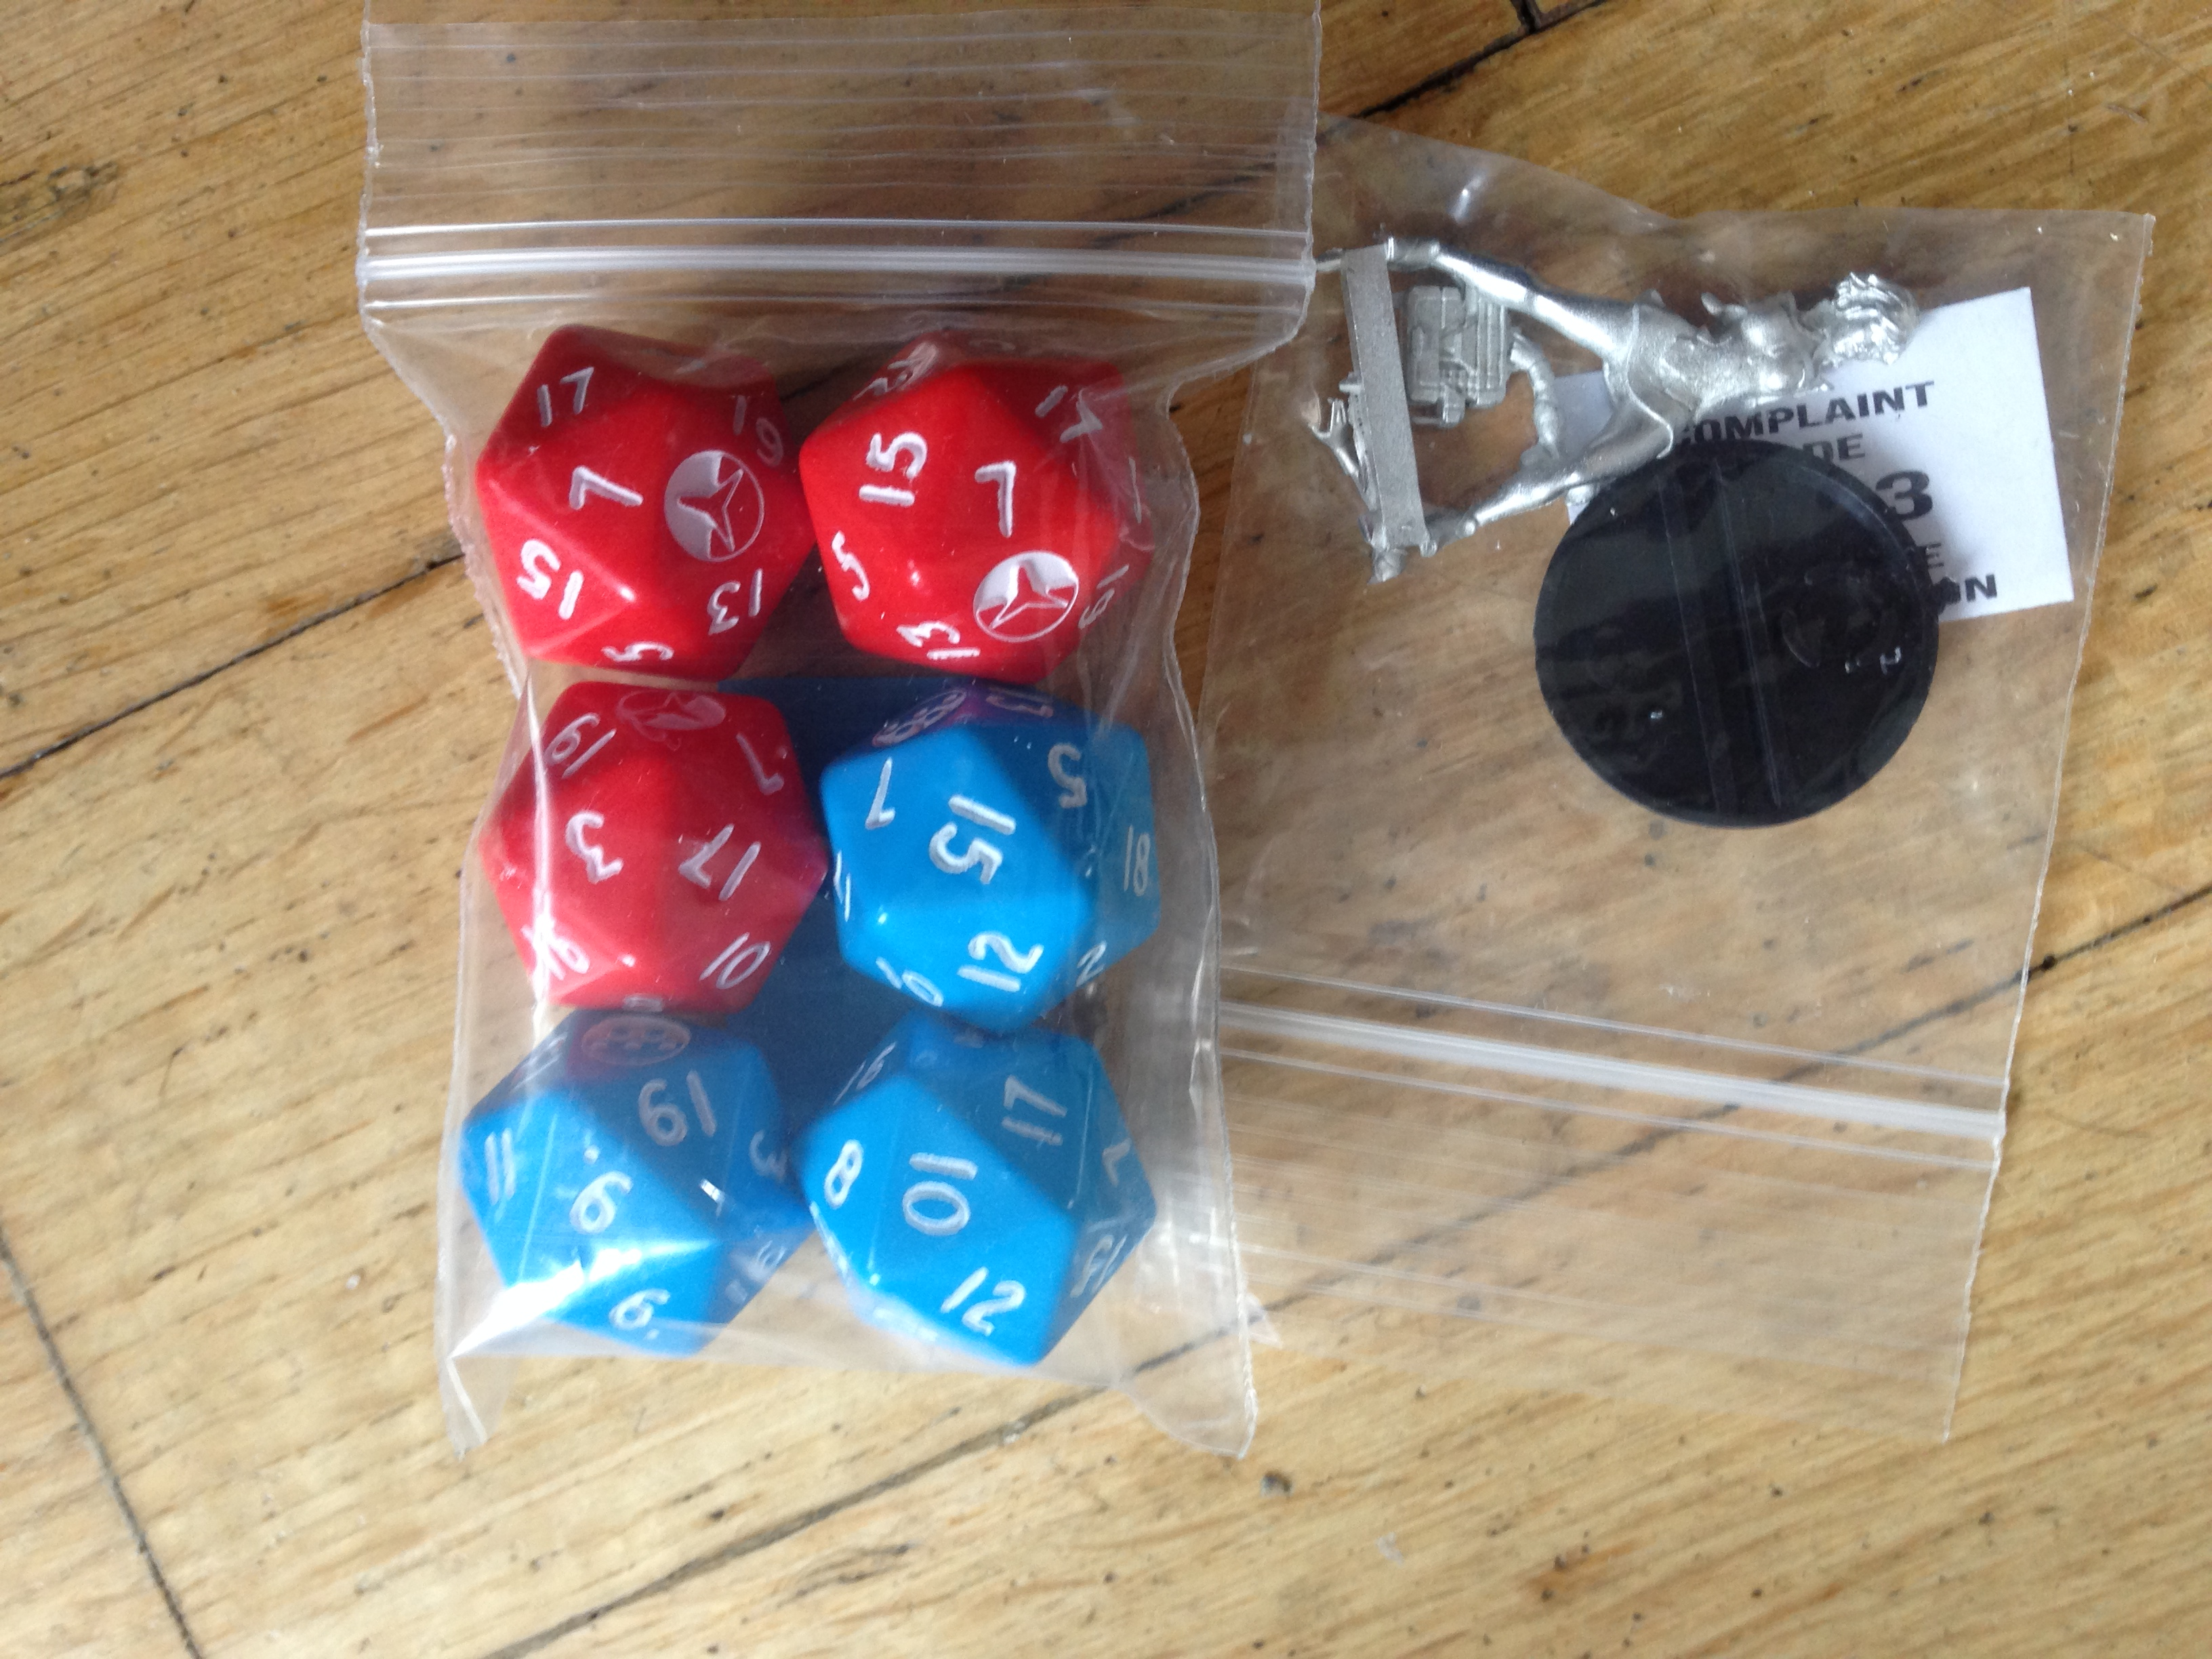 Dice and the limited miniature